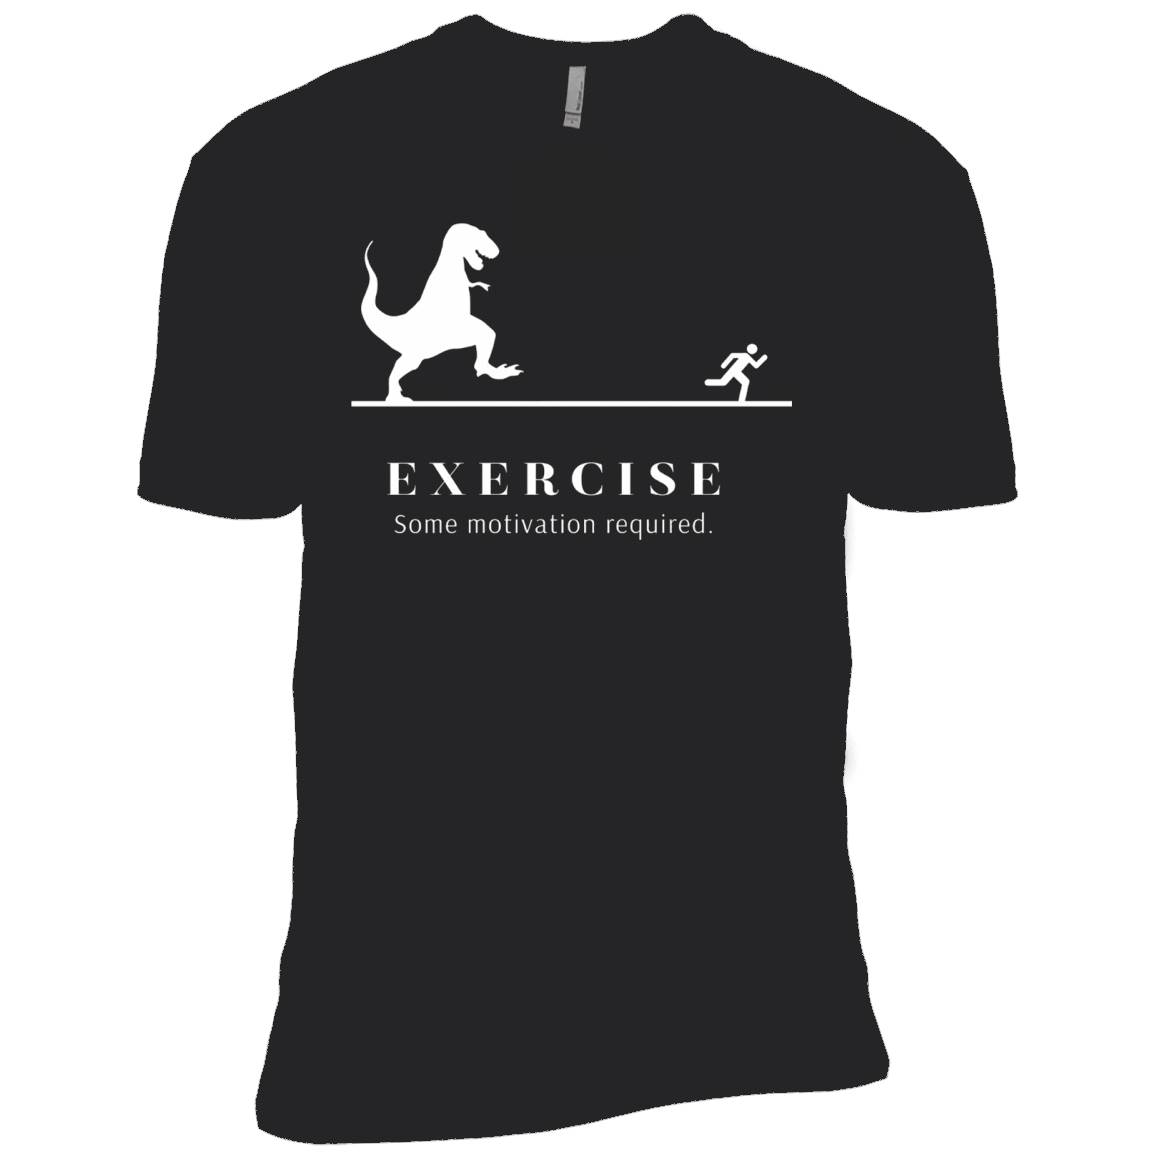 Exercise T-Shirt Some Motivation Required Cool Fashion